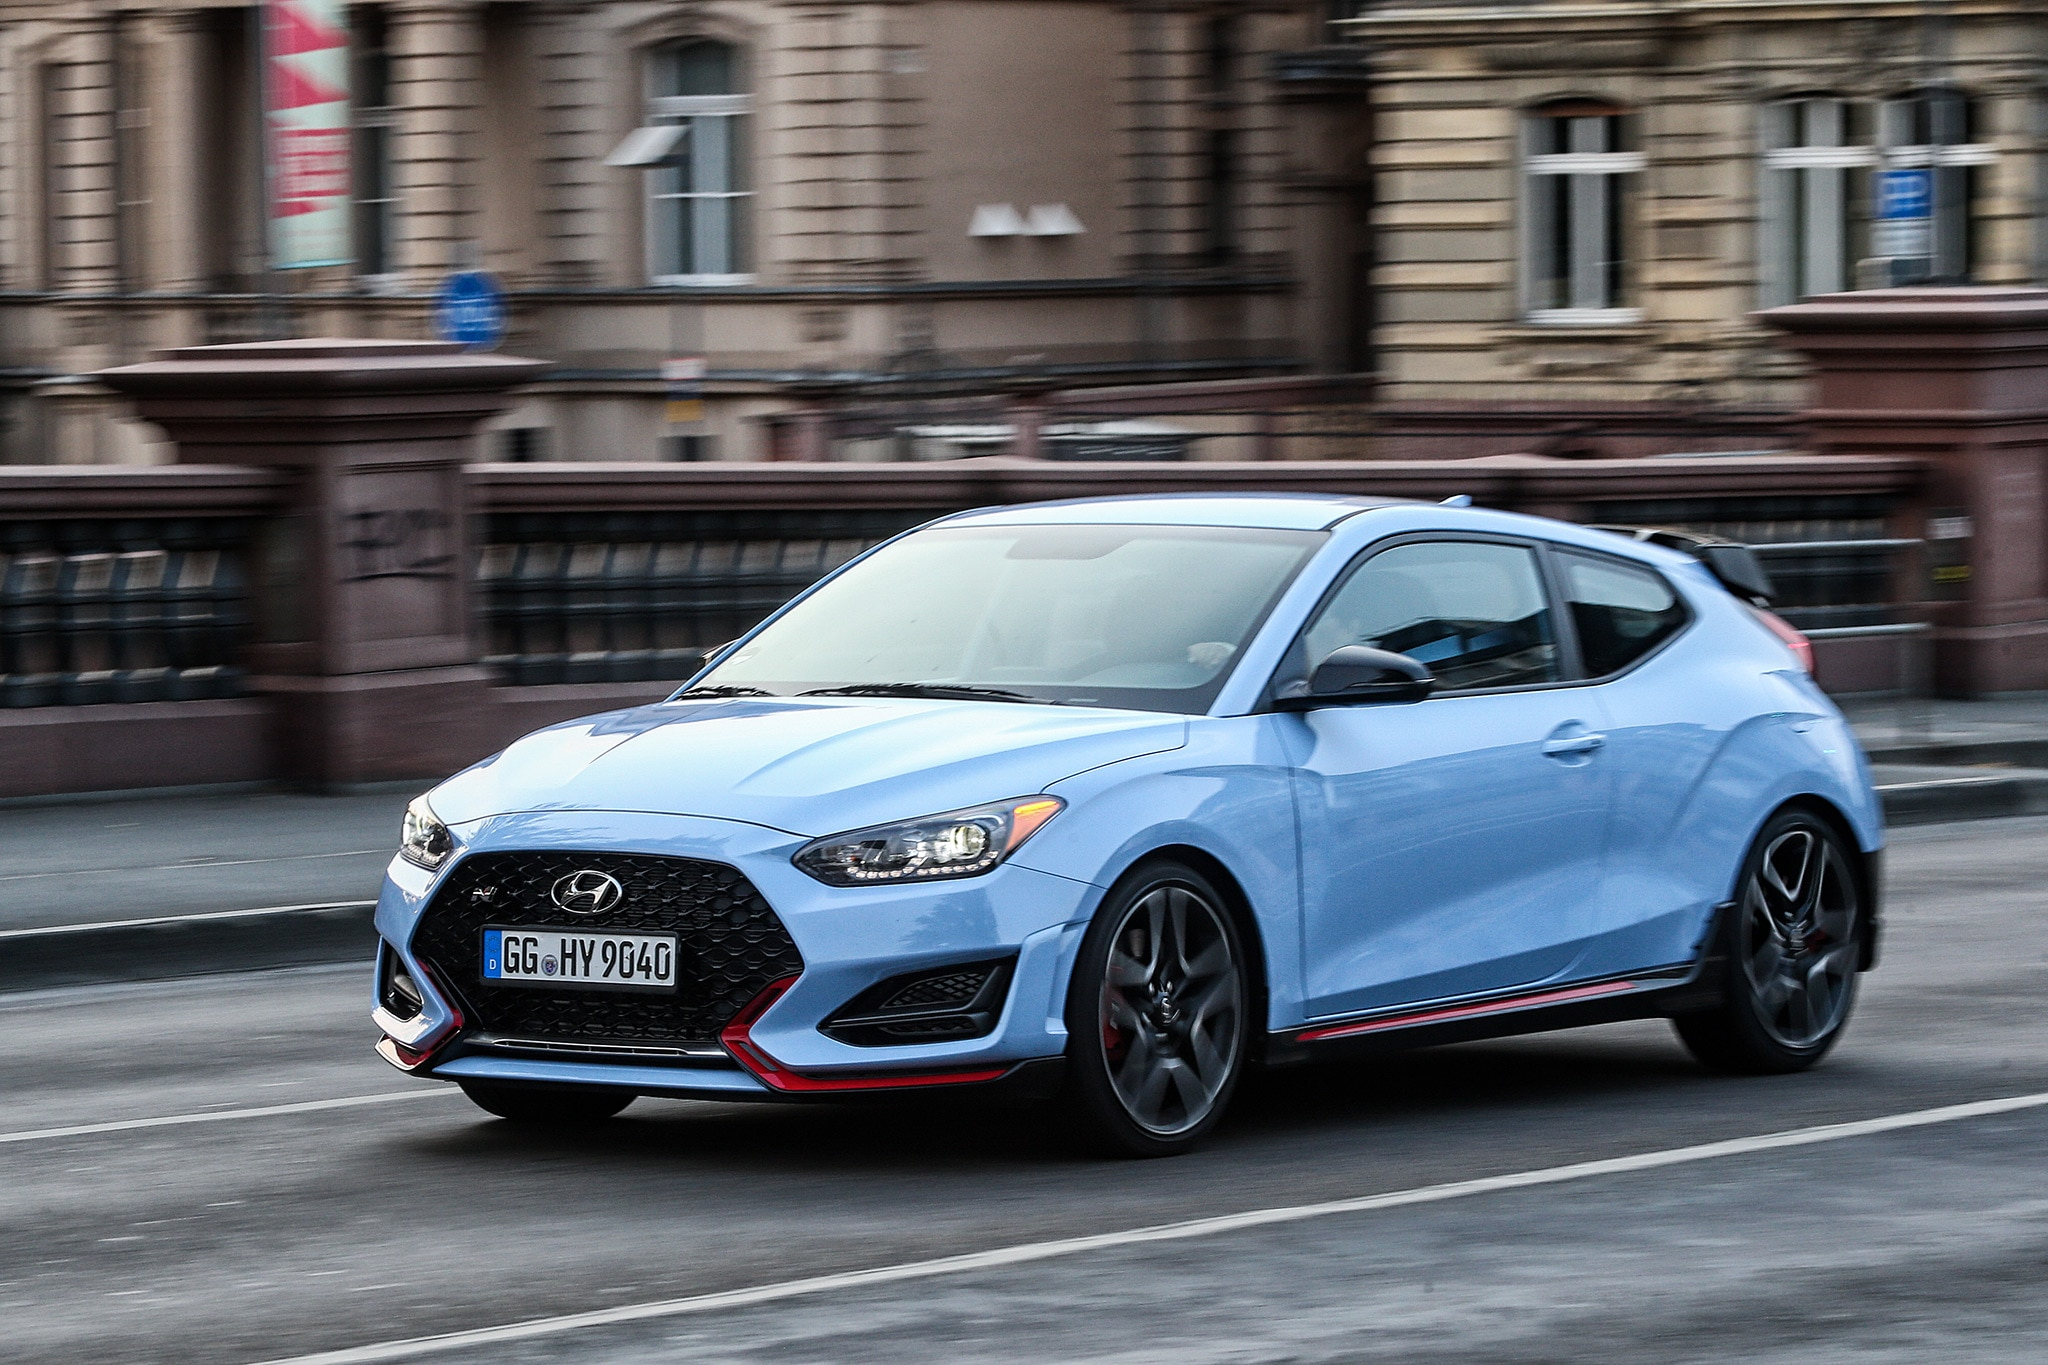 2019 Hyundai Veloster N First Drive Review | Automobile Magazine